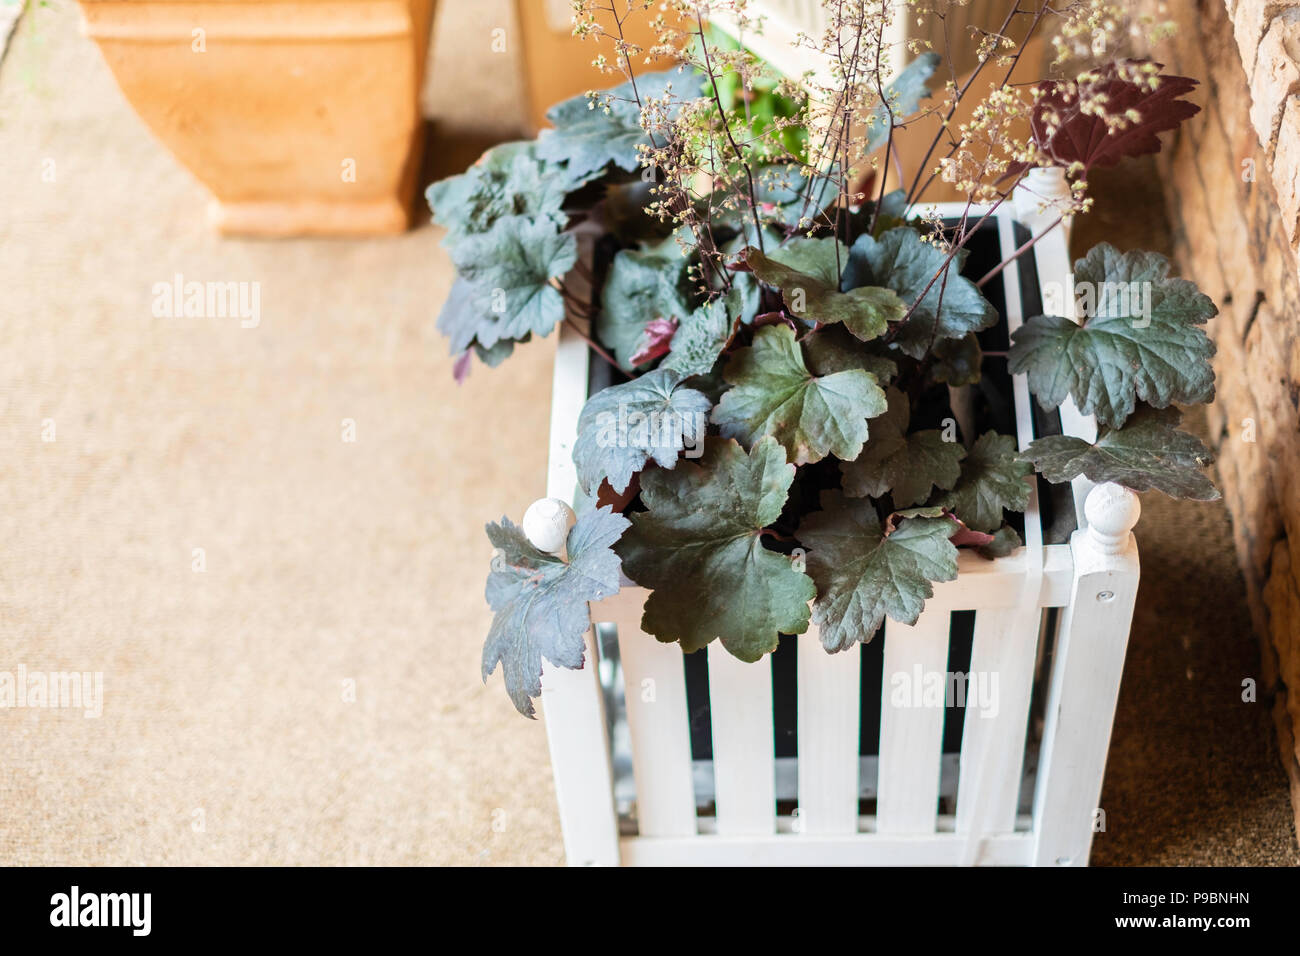 Coral Bell Plant Heuchera Hybrid With Spent Flowers In A White